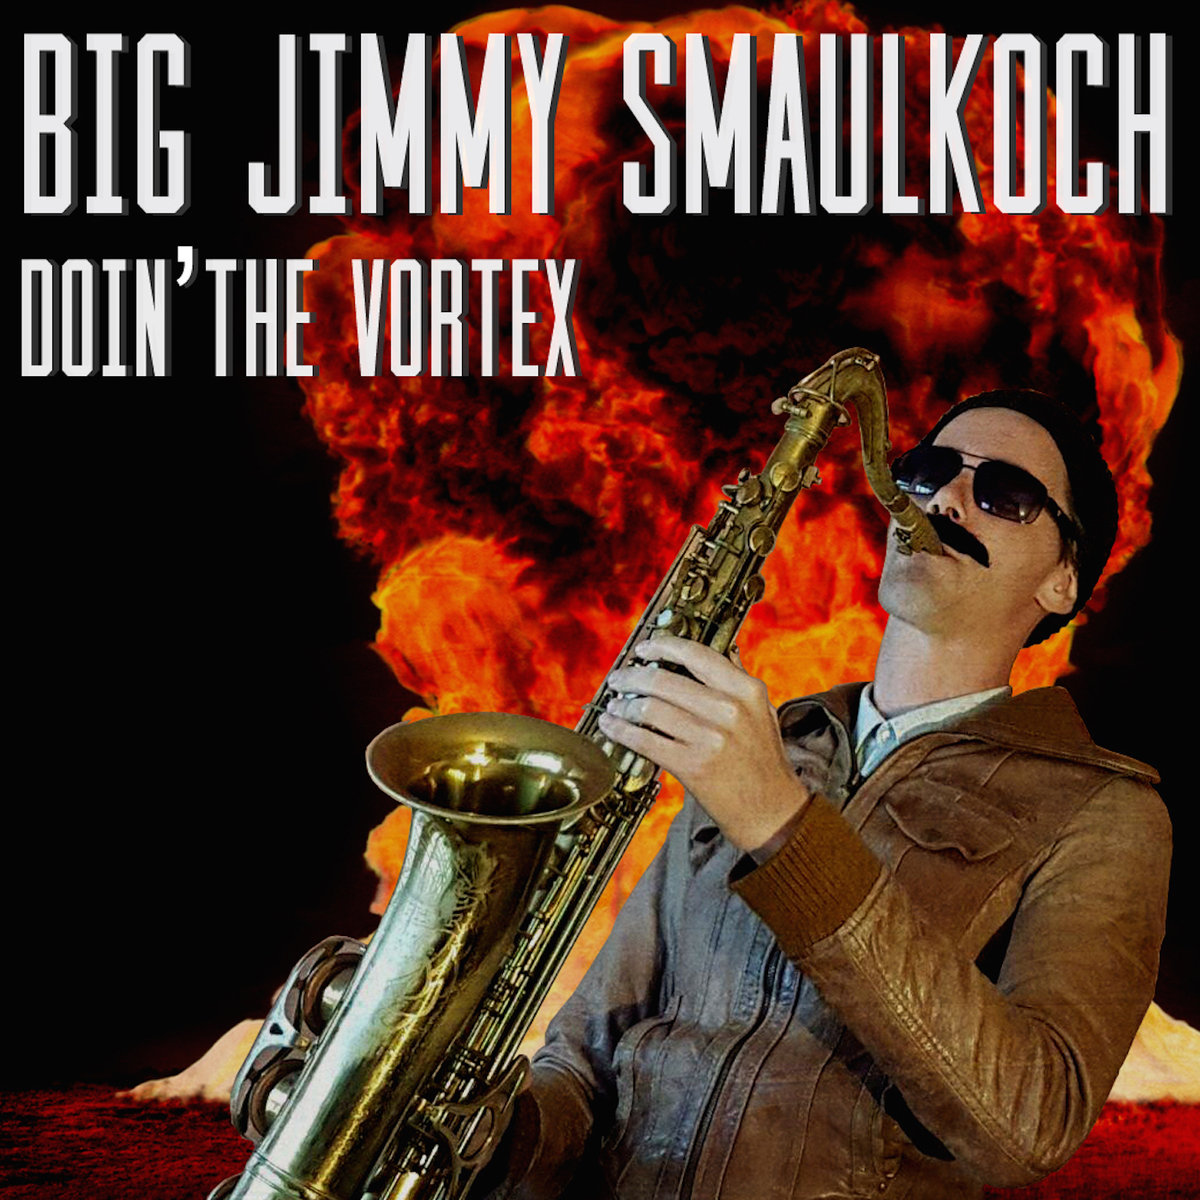 Big Jimmy Smaulkoch – Jimmy and The Hoff (the video!)